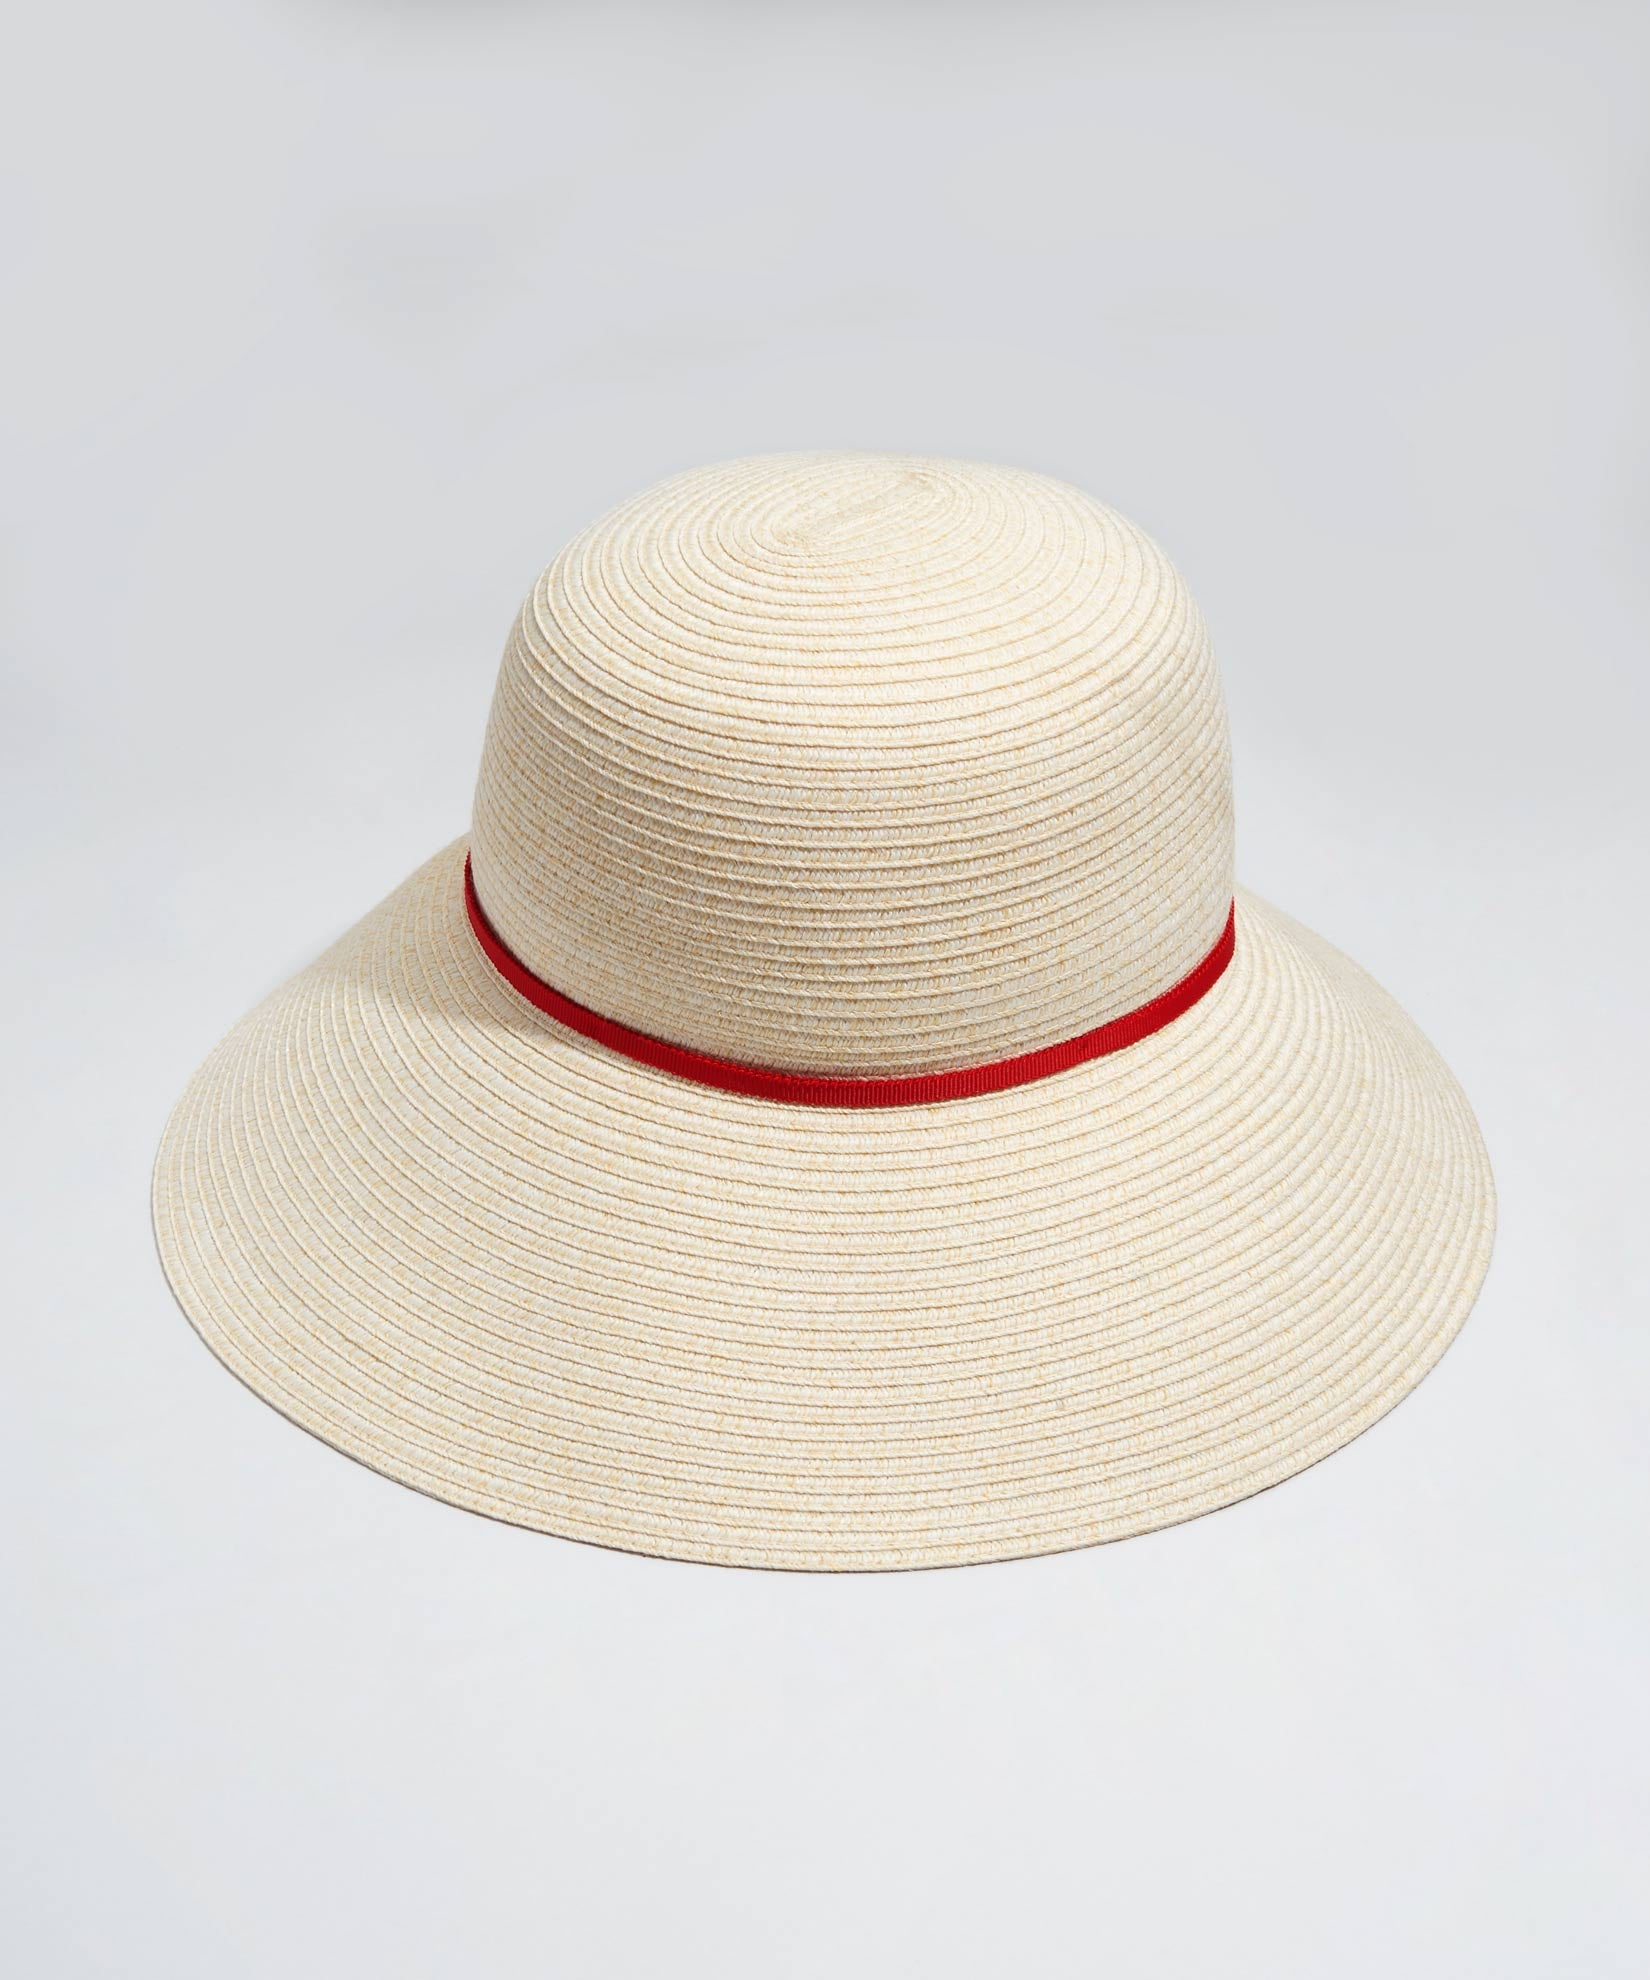 Resort Red - Perfectly Packable Hat